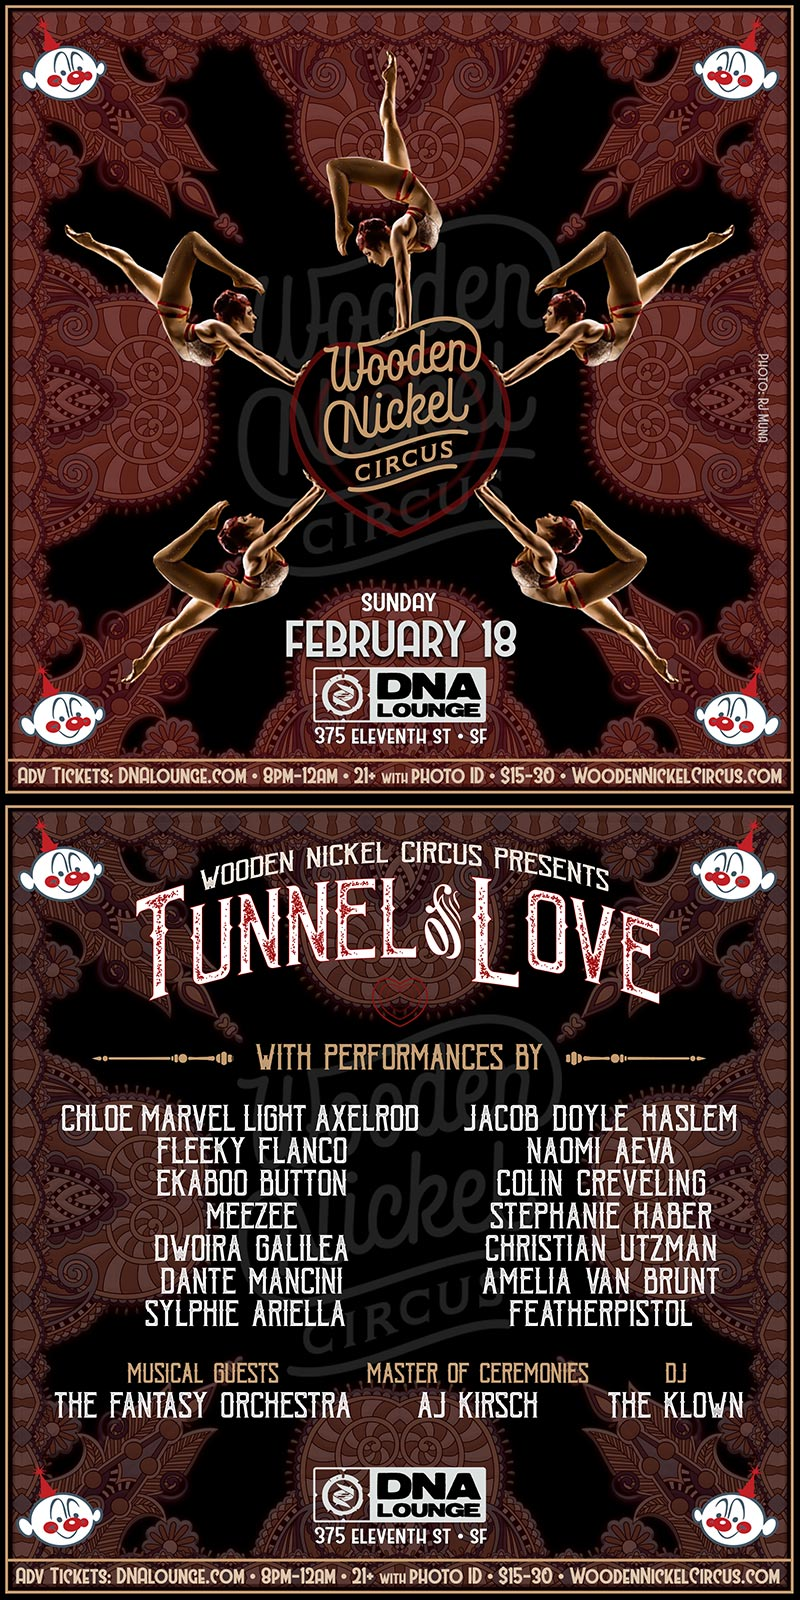 The Klown at Wooden Nickel Circus's Tunnel of Love - February 18, 2018, 8pm - DNA Lounge in San Francisco